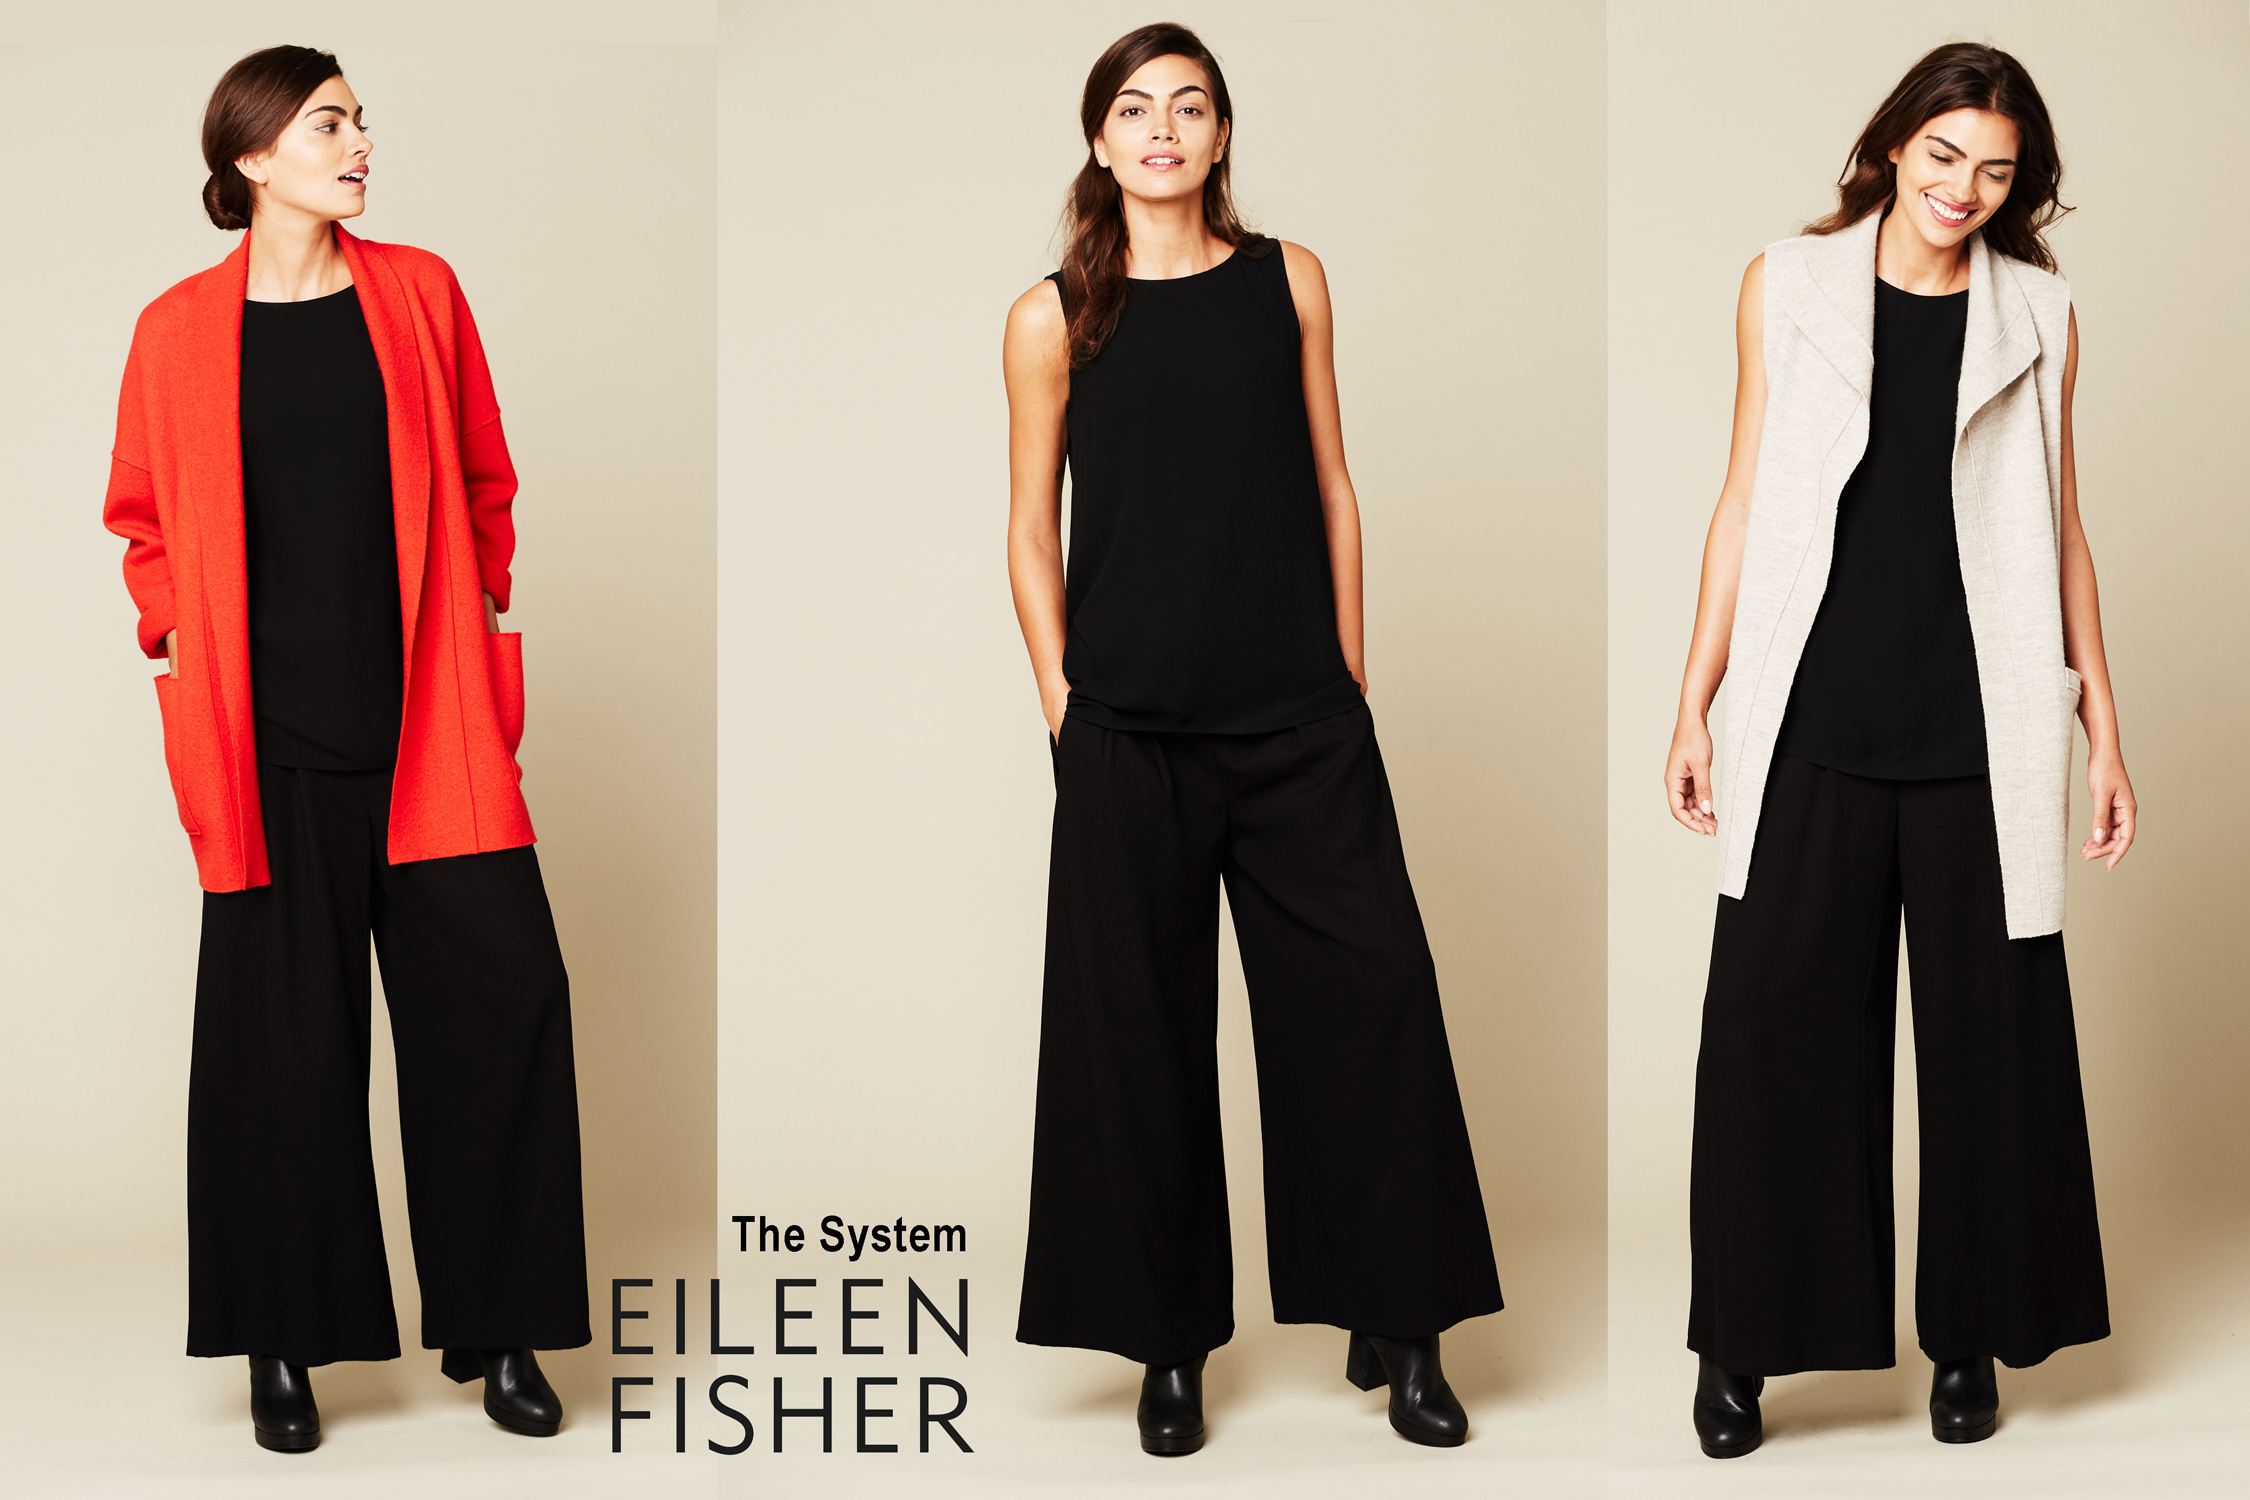 756GHsingleFASH.eileen-fisher-the-system